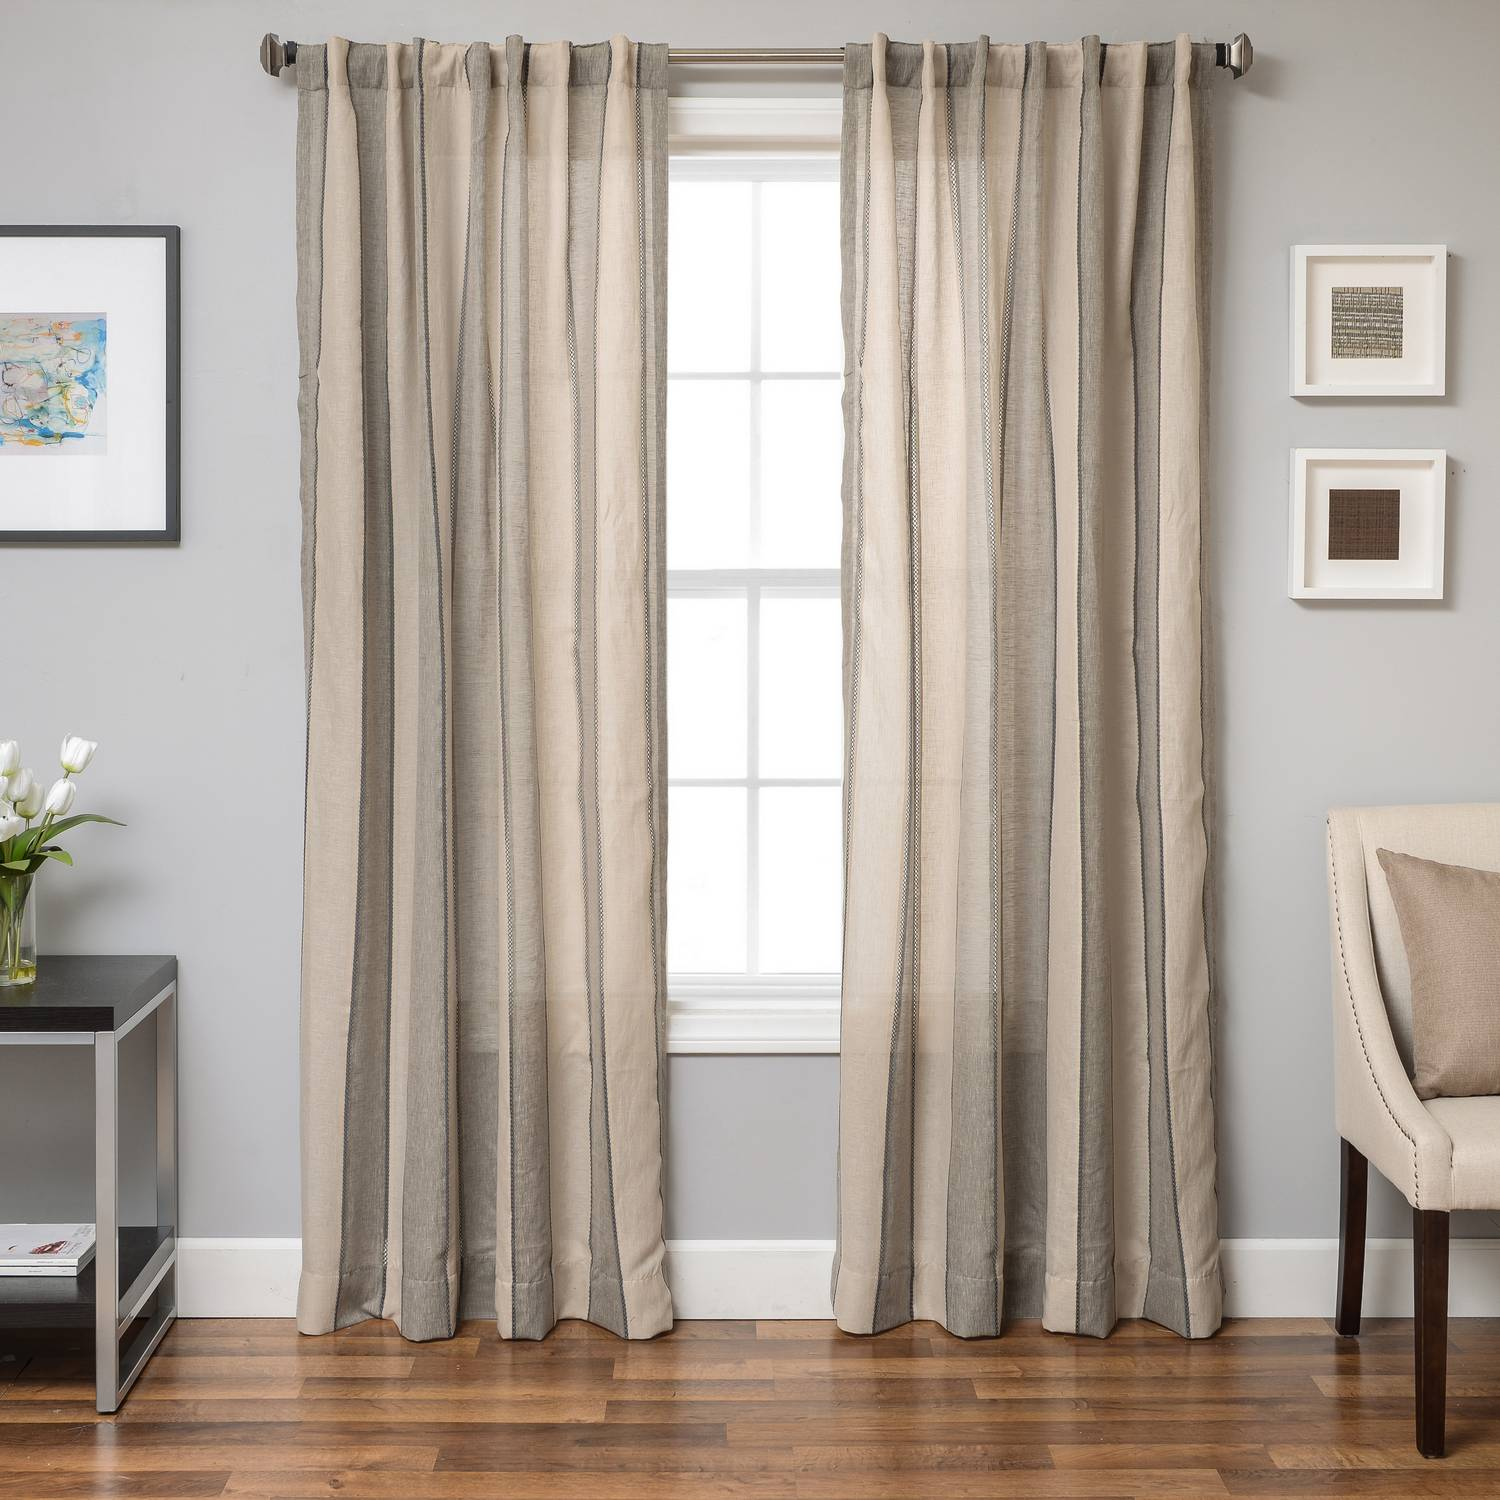 panels velvet free home overstock on panel over product luxe shipping garden curtain orders